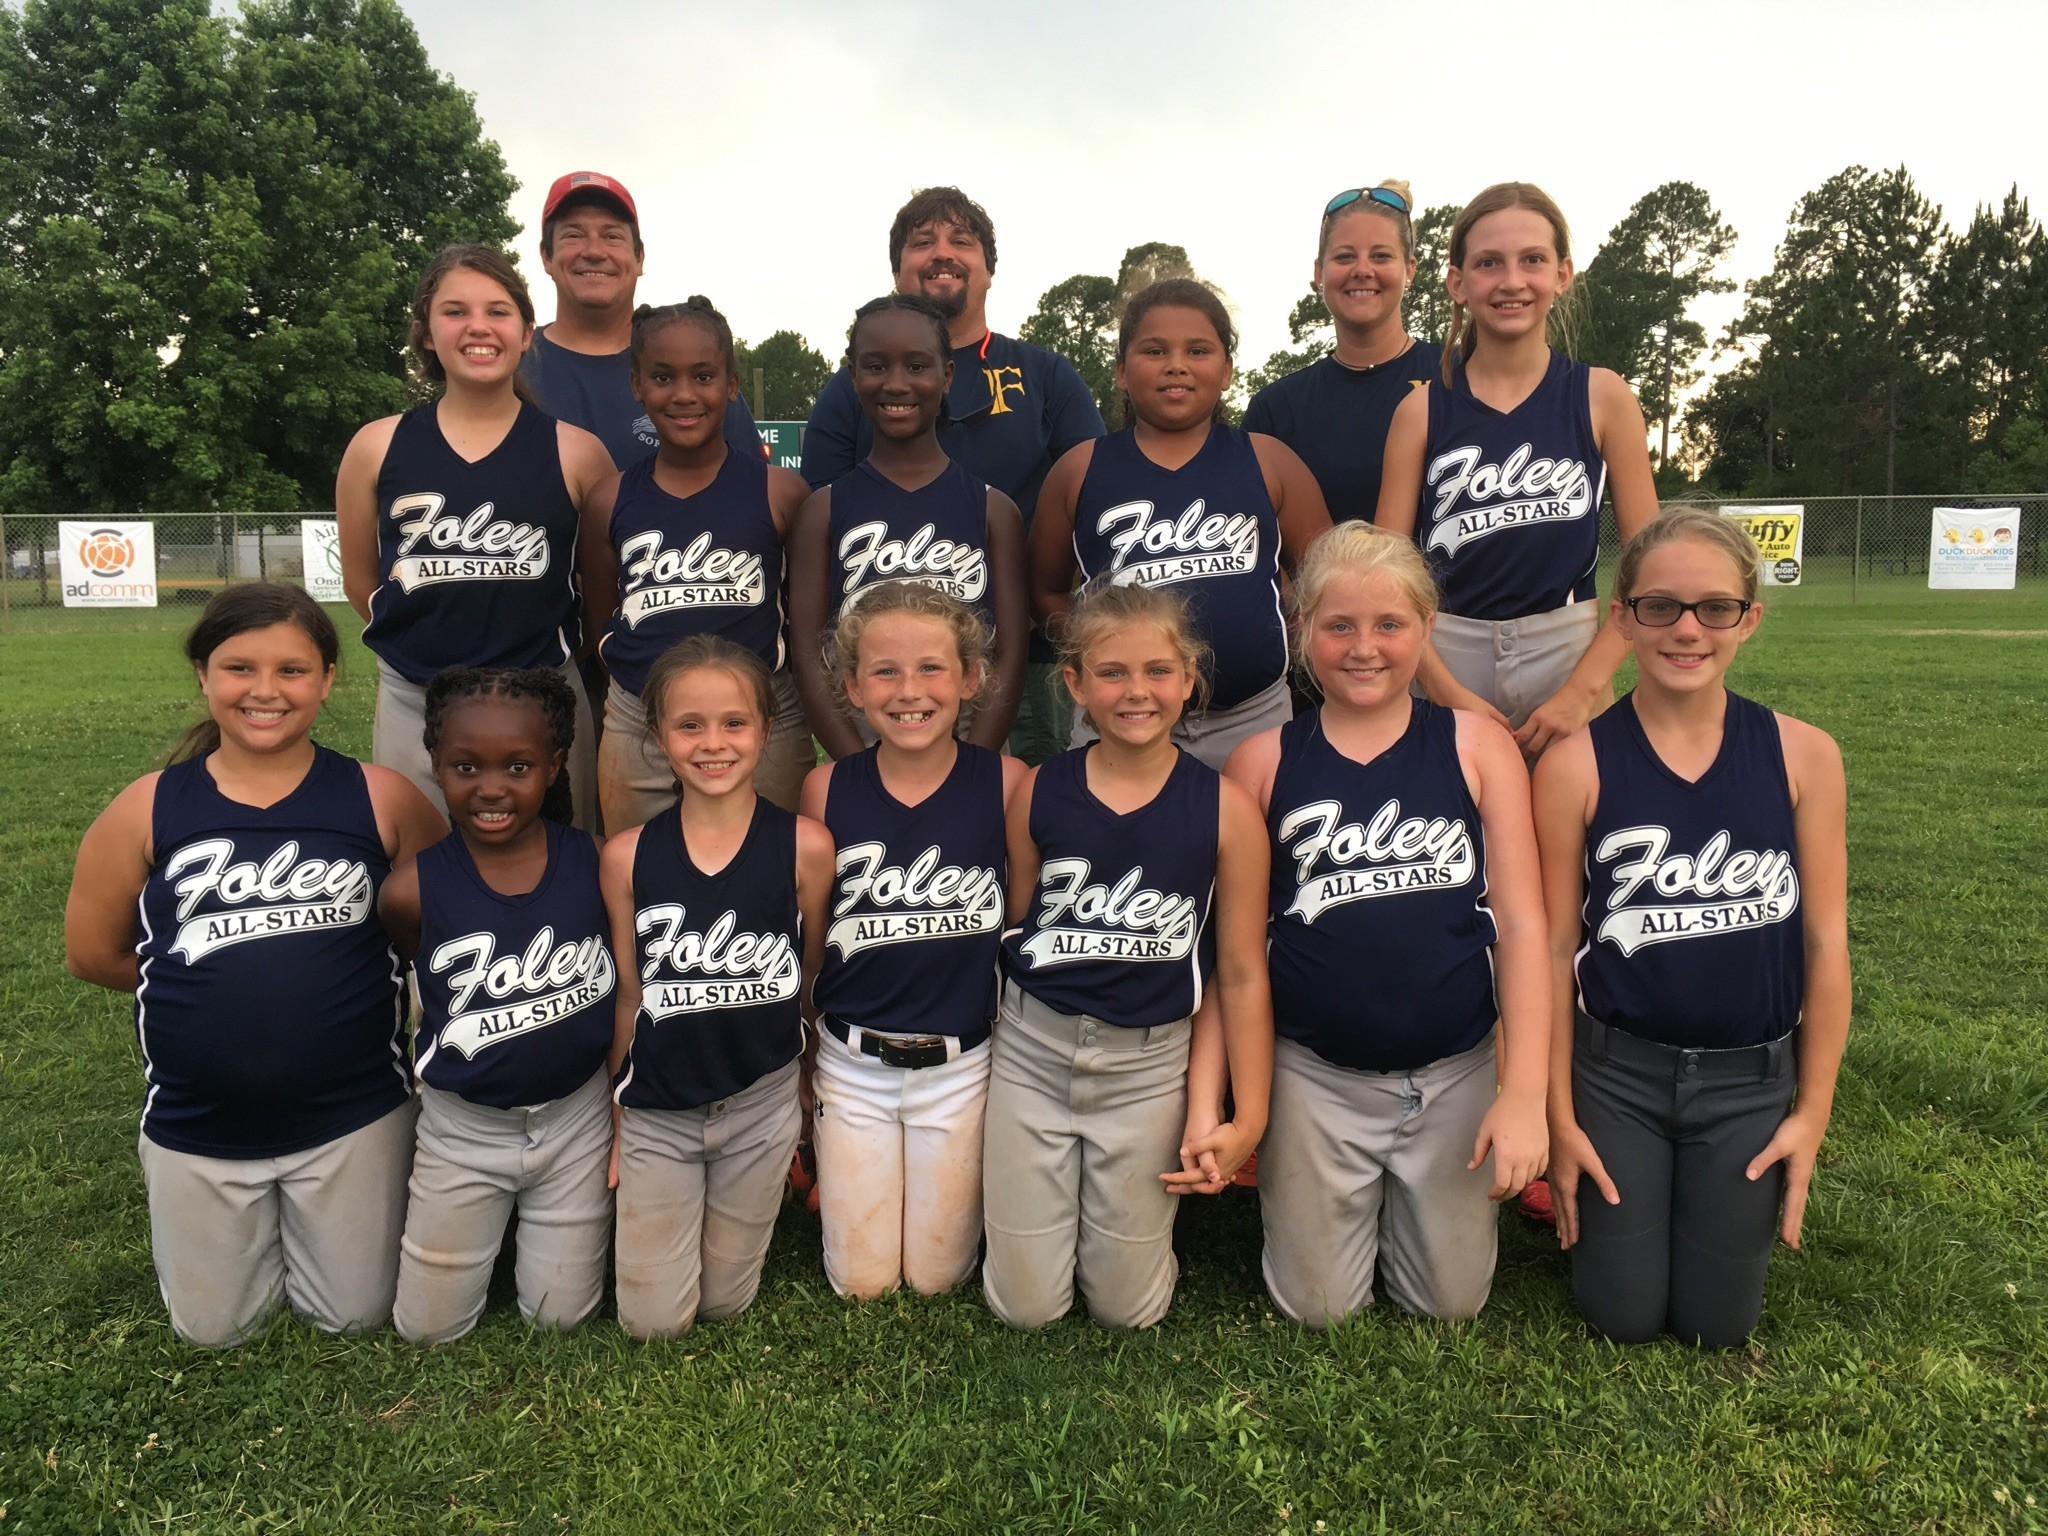 10U Age Group - Head Coach: Mitchell Harrison. Assistants: Greg Mattison and Christy Ramsey.Players Standing Left to Right: Kinsley Bourne, Christiana Buchanan, Jamaya Bronson, Leilani Carmona, Maggie Mattison. Players Kneeling Left to Right: Nyla Harrison, Fredayshia Goodwin, Serenity Walden, Kinsley Blackwell, Jaden Scarpitti, Savannah Clayton, and Bailey Creighton.